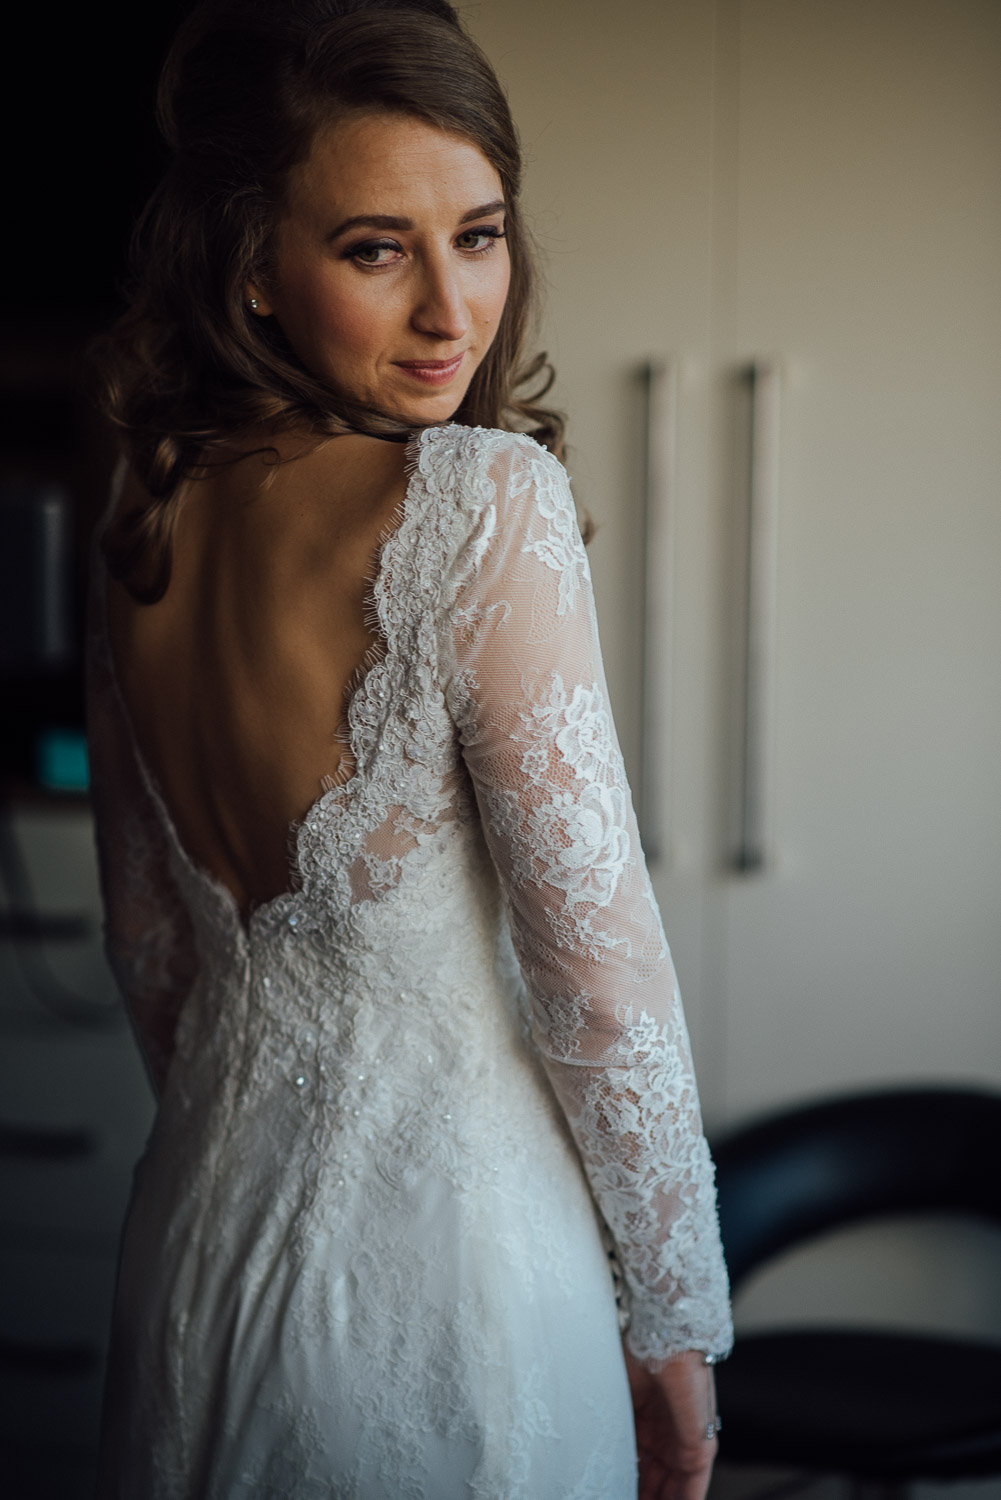 bride looking at herself in the mirror by creative and alternative london wedding photographer the shannons photography